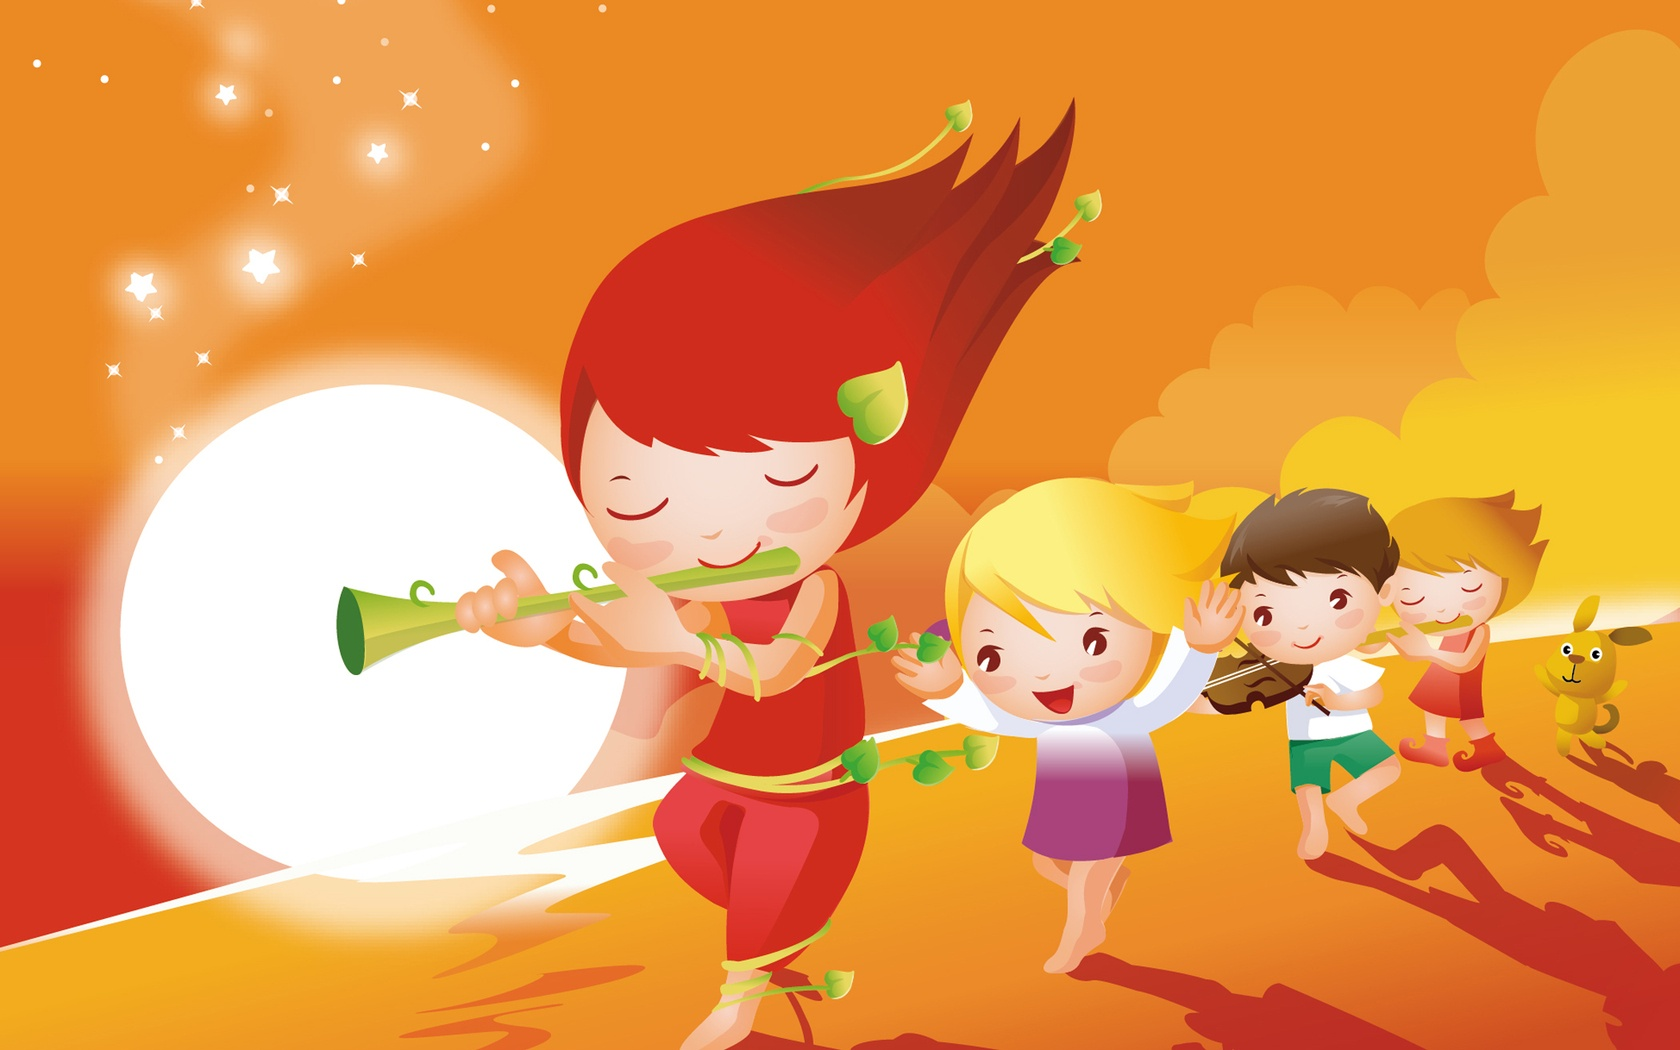 Cartoon kids music 1680 x 1050 download close